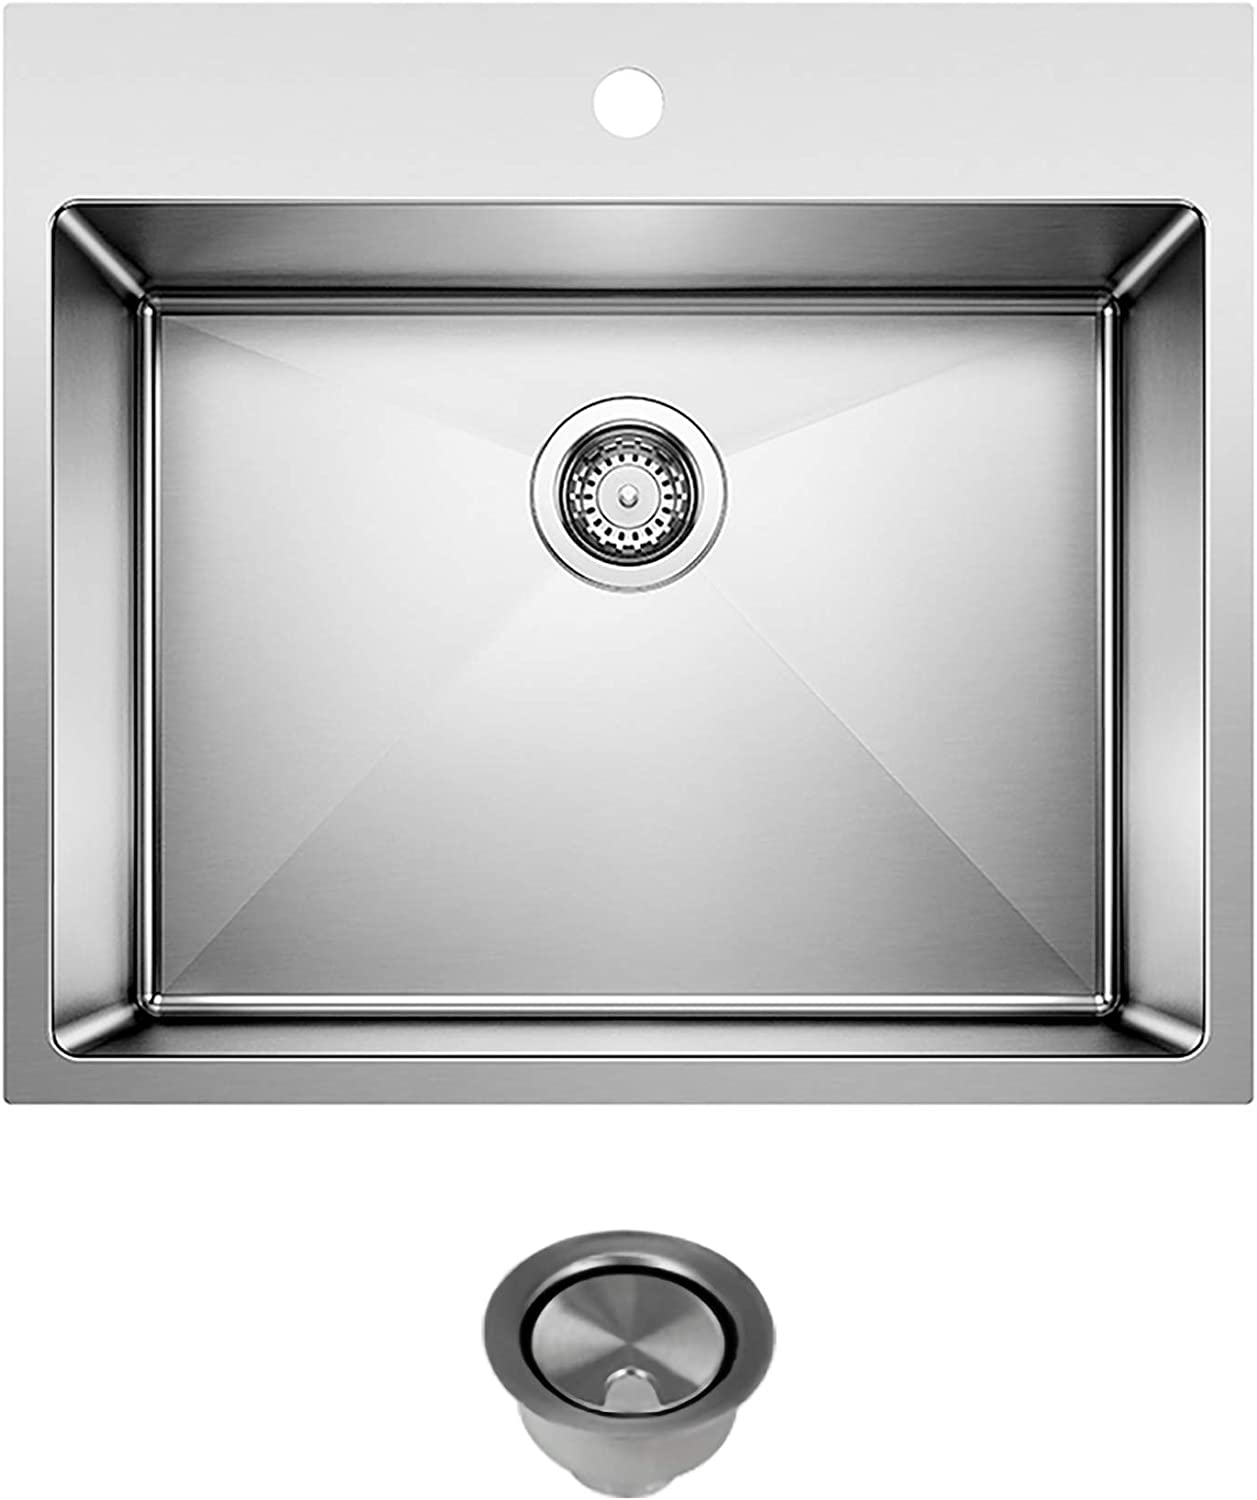 Blanco Free shipping on posting reviews K-522136 Quatrus Laundry Sink Stainless Strainer in with trend rank